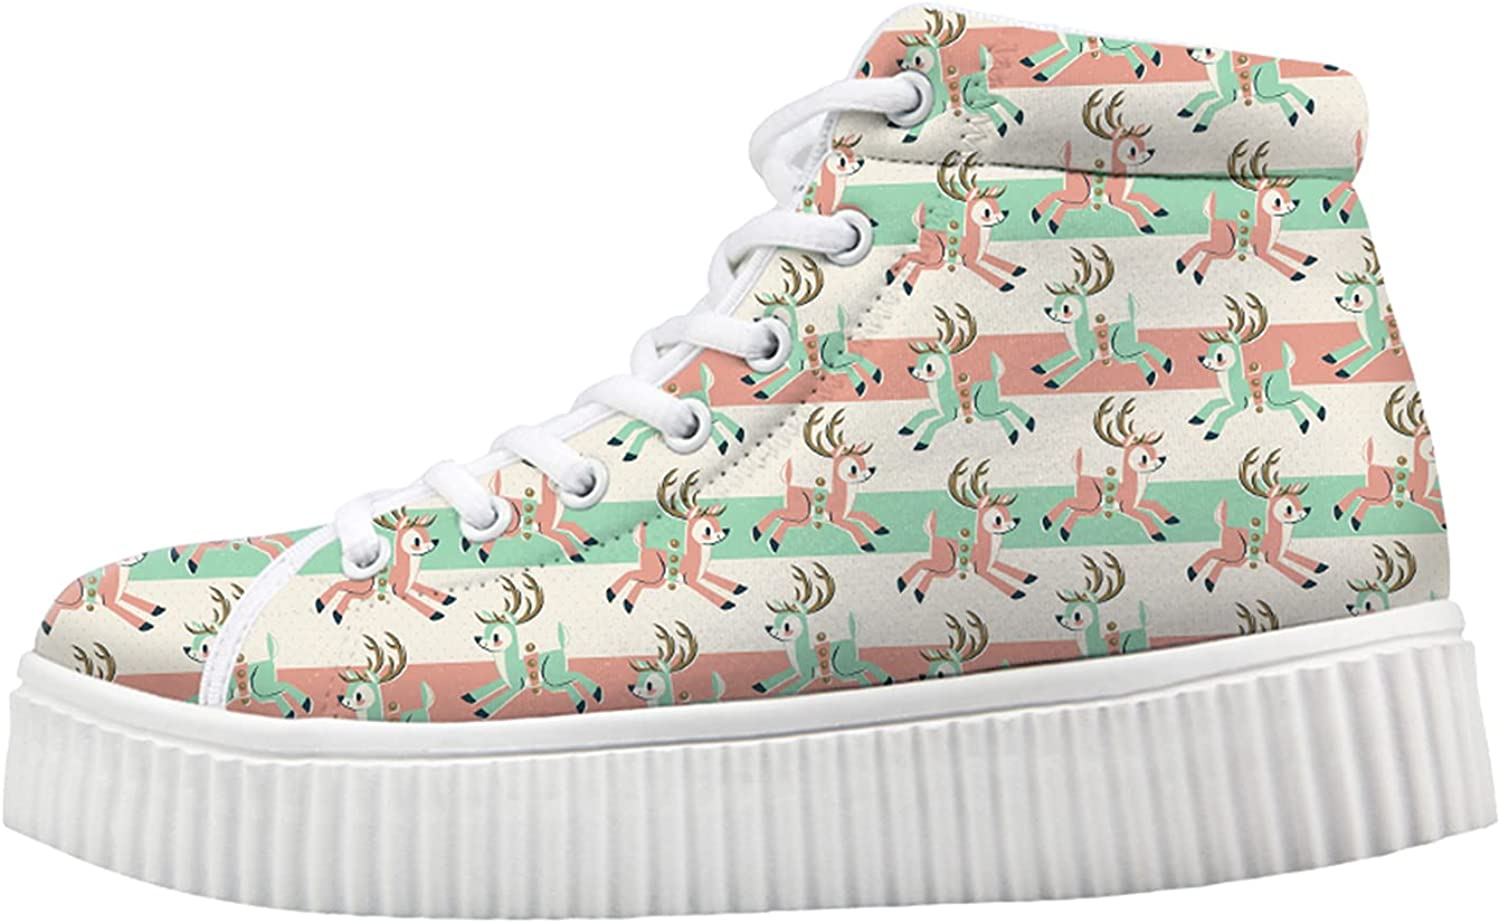 Owaheson Xmas Reindeer Busy Send for Directly managed store Sneakers Wedge unisex Women Gifts